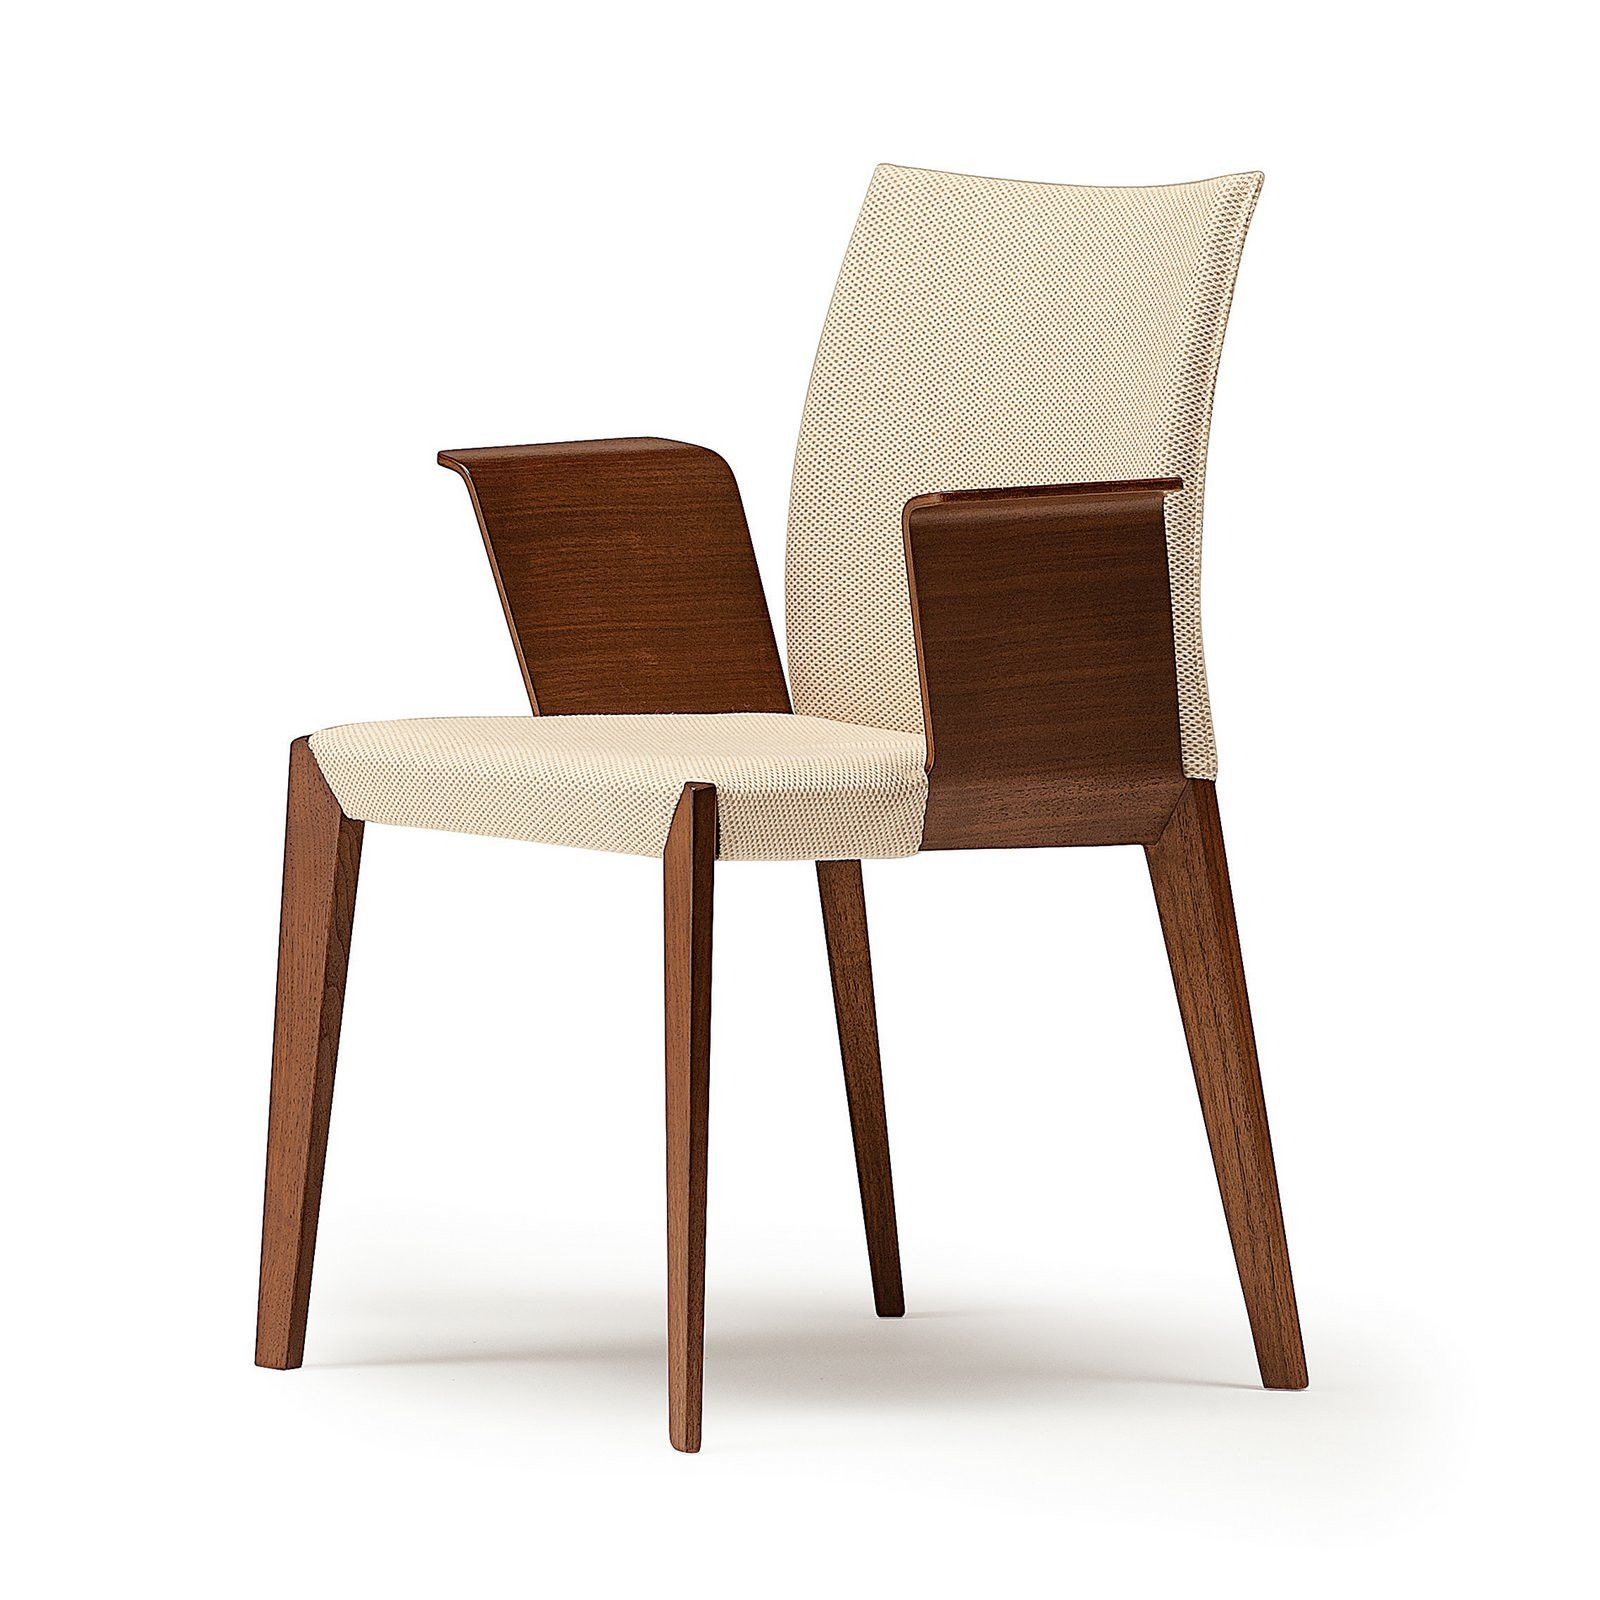 Conde House - Moov Arm Chair - Dining Chair